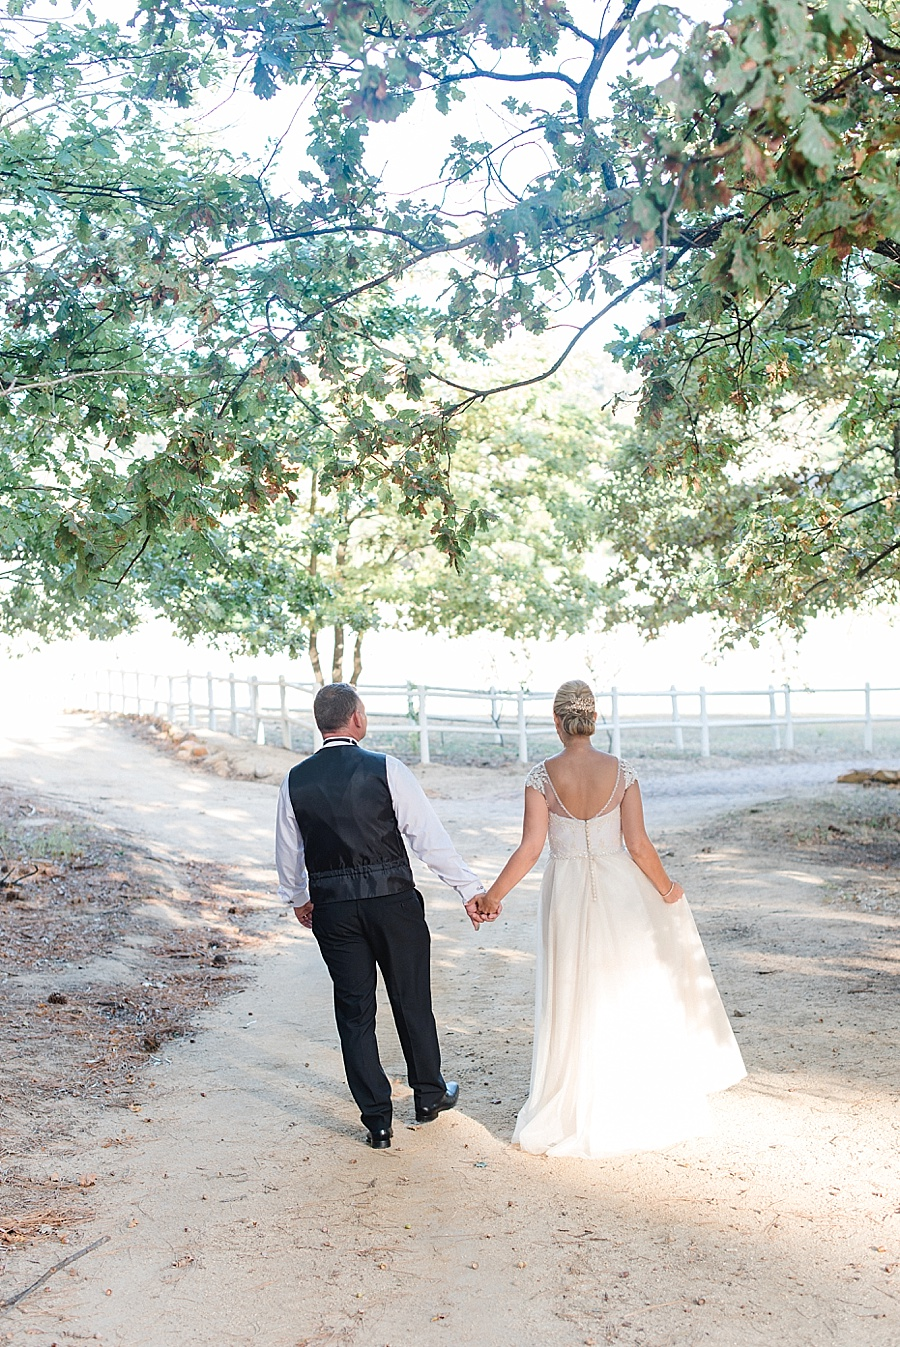 Darren Bester - Wedding Photographer - Langkloof Roses - Lauren + Shannon_0115